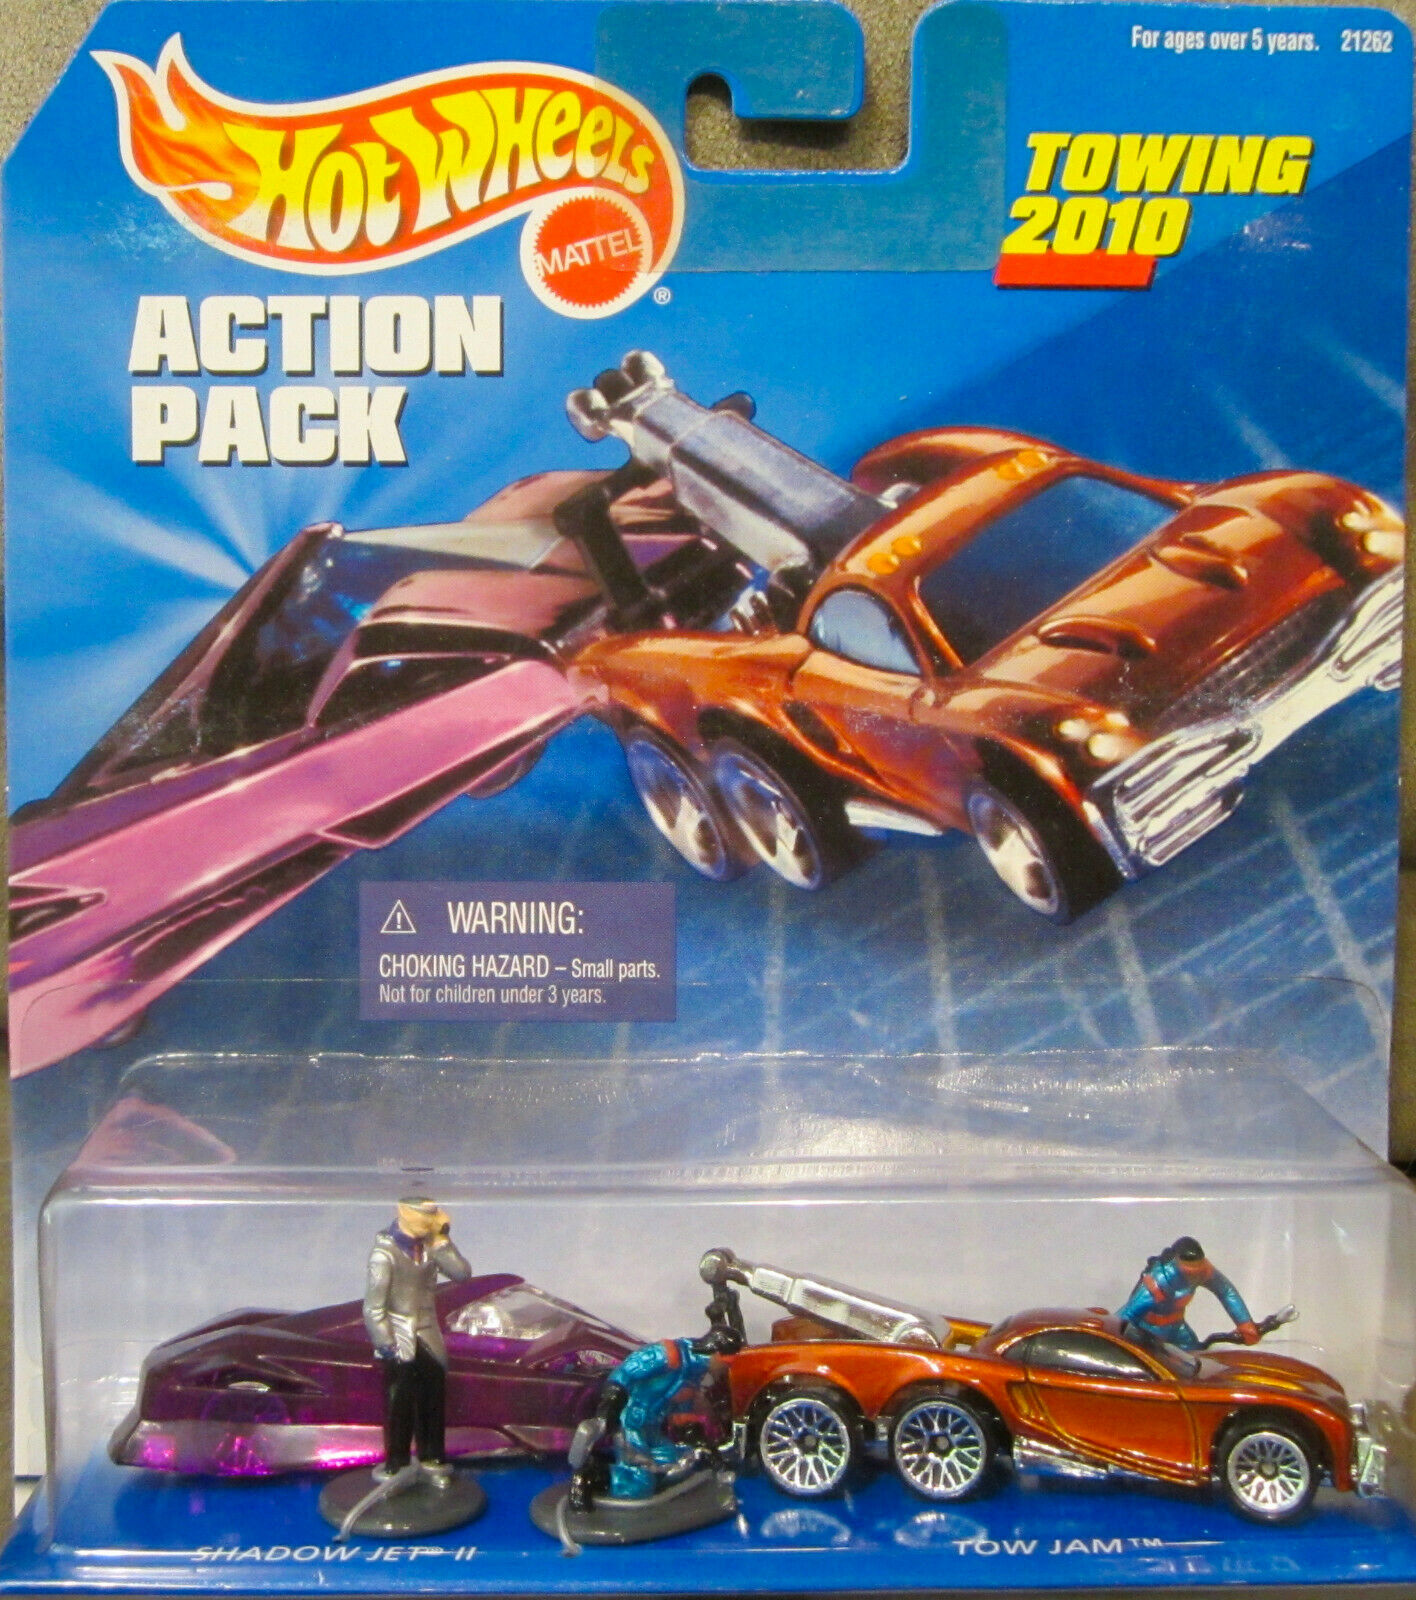 Towing 2010 Action Pack